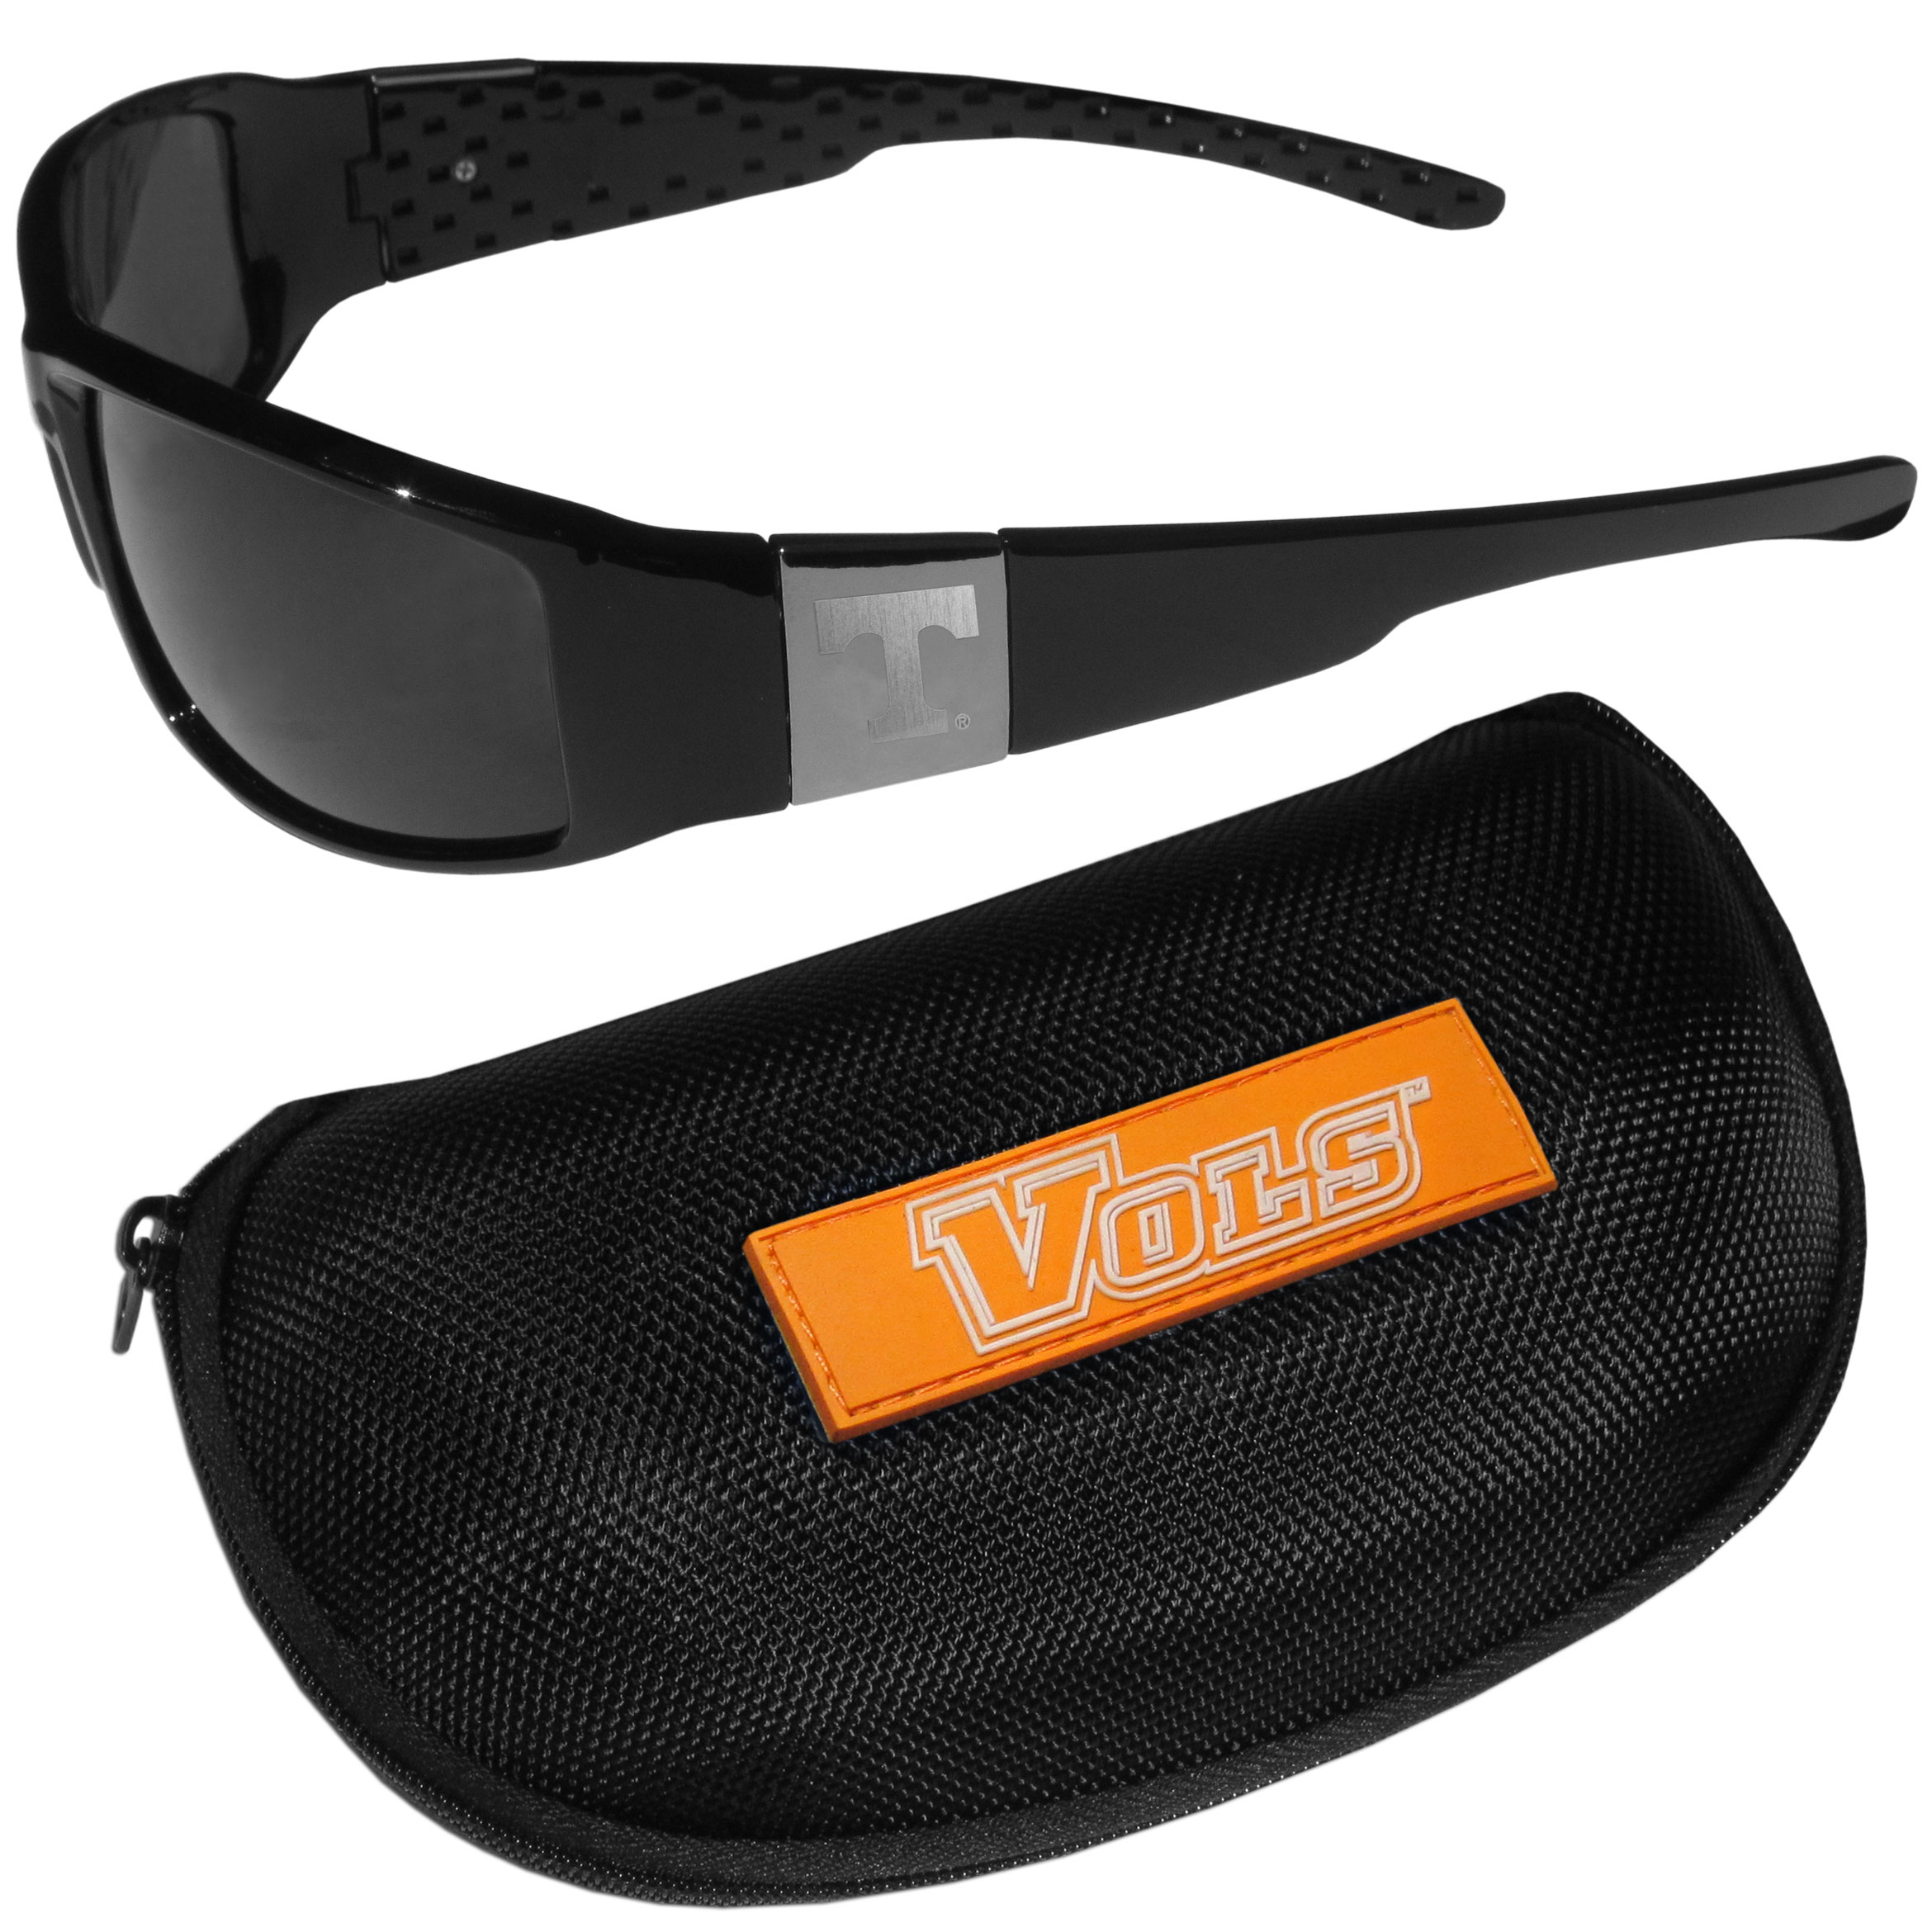 Tennessee Volunteers Chrome Wrap Sunglasses and Zippered Carrying Case - These designer inspired frames have a sleek look in all black with high-polish chrome Tennessee Volunteers shields on each arm with an etched logo. The shades are perfect any outdoor activity like; golfing, driving, hiking, fishing or cheering on the team at a tailgating event or an at home game day BBQ with a lens rating of 100% UVA/UVB for maximum UV protection. The high-quality frames are as durable as they are fashionable and with their classic look they are perfect fan accessory that can be worn everyday for every occasion. The shades come with a zippered hard shell case to keep your sunglasses safe.